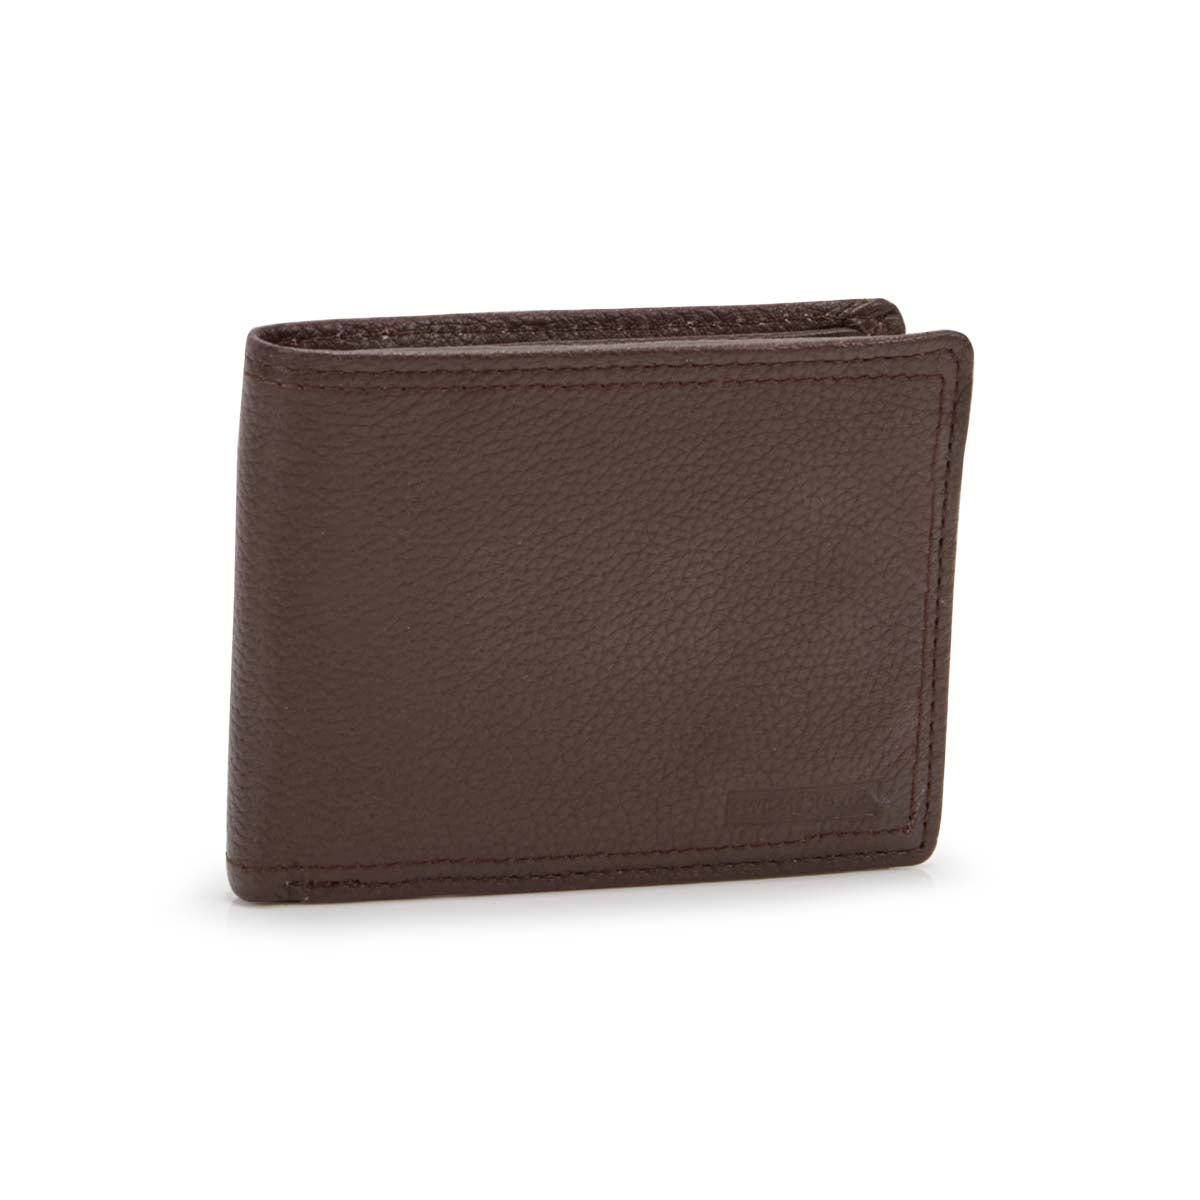 Women's brown RFID ID flap billfold wallet